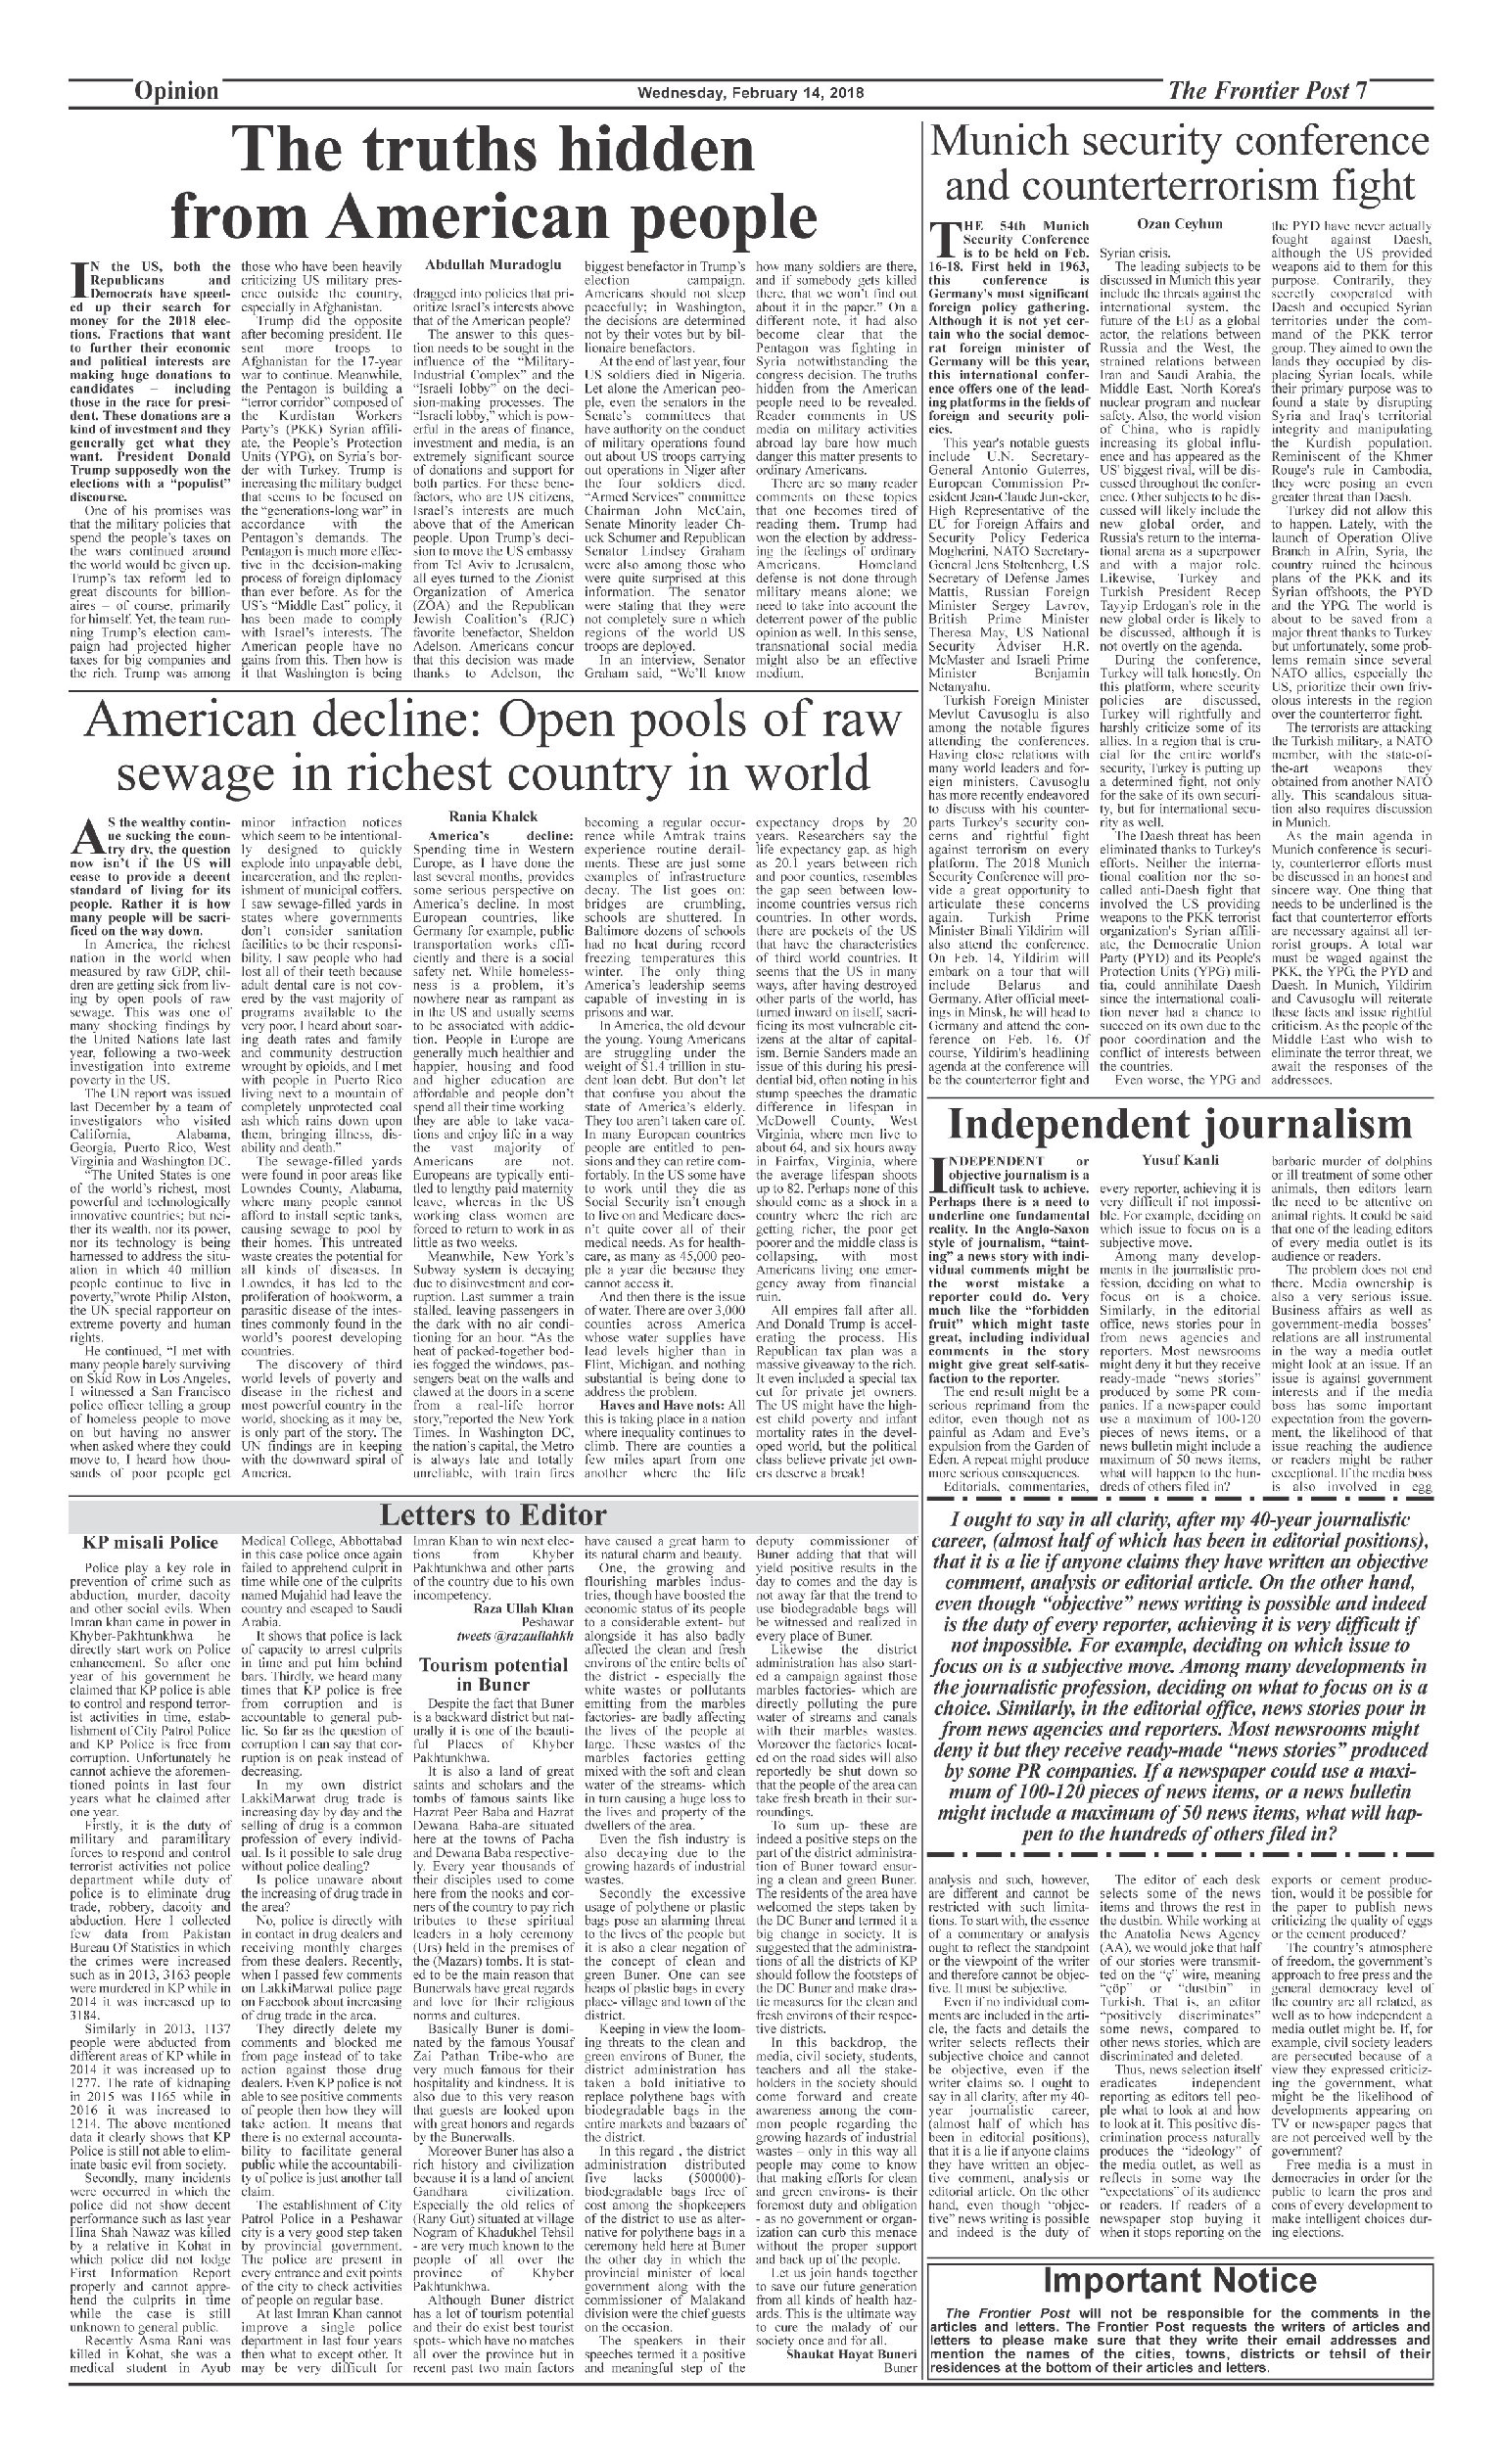 Opinion Page 14-02